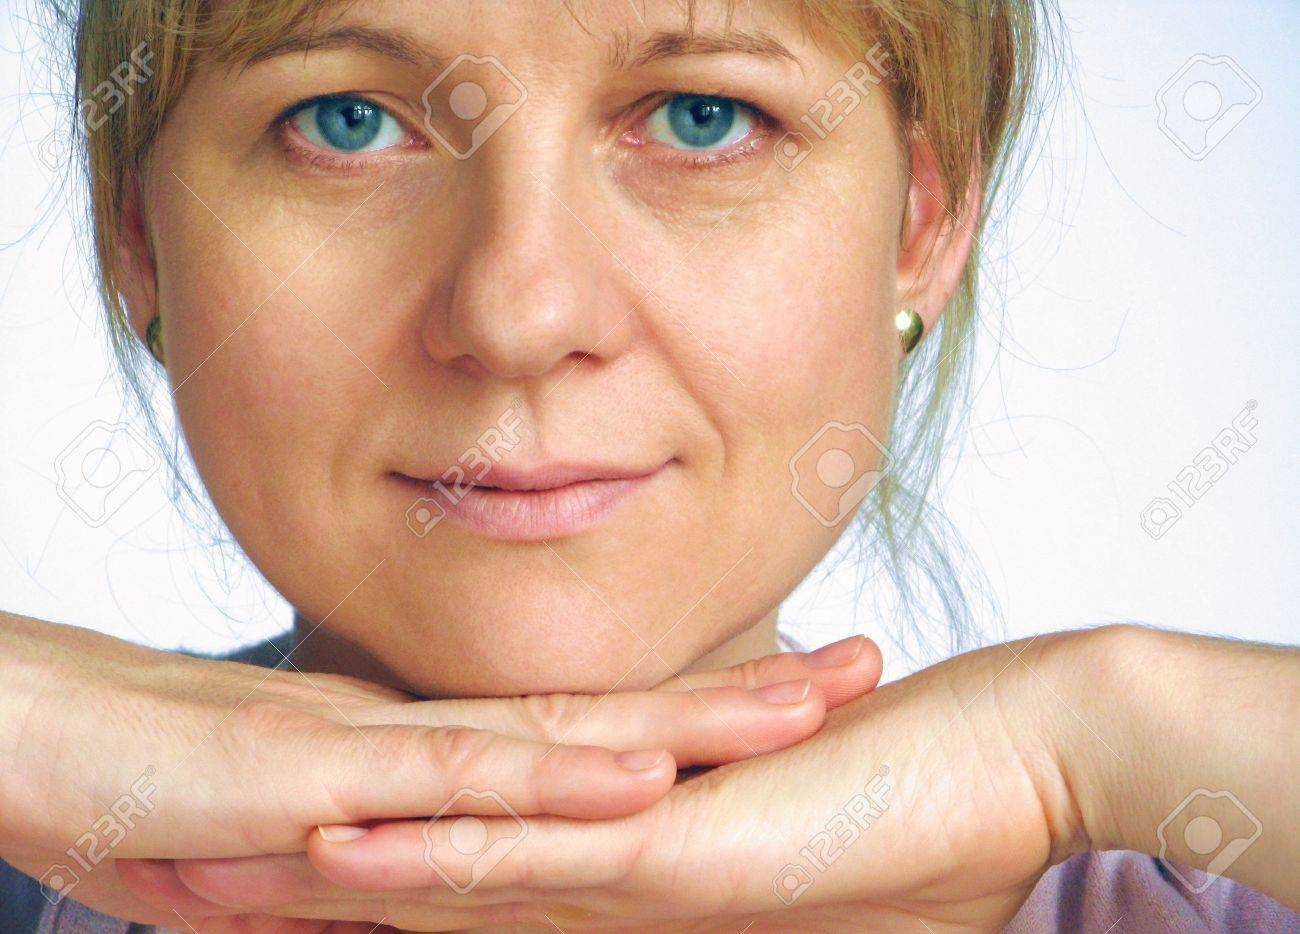 Correction of wrinkles on half of face Stock Photo - 4126607